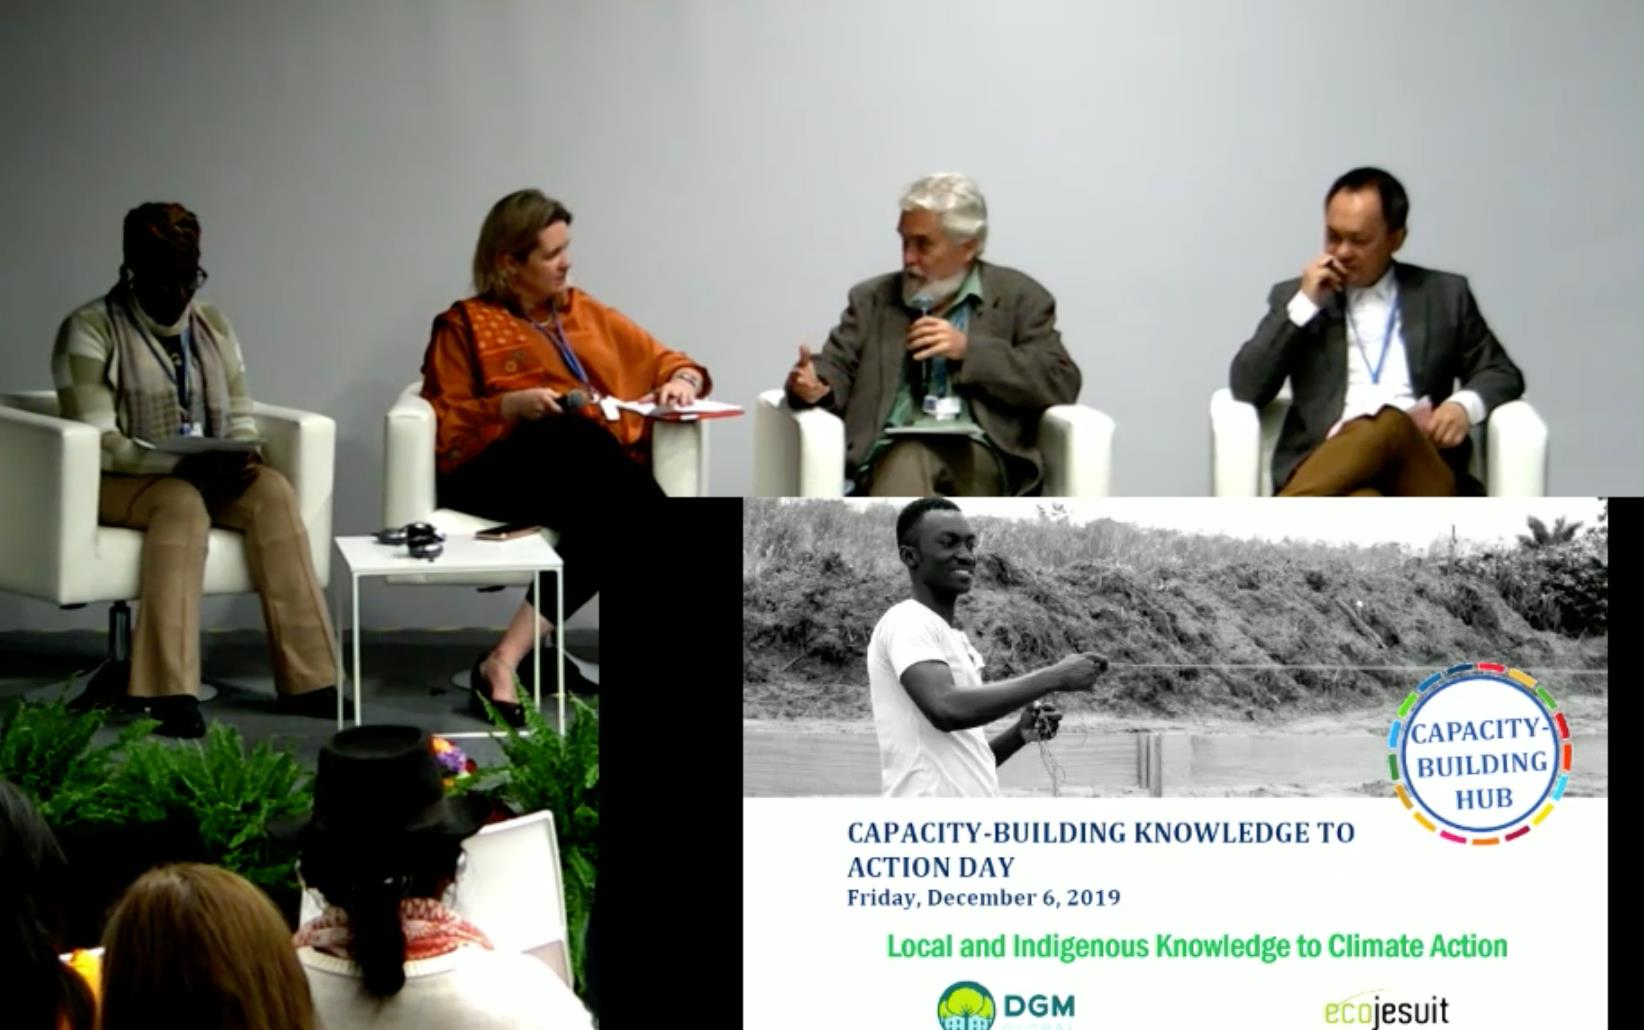 Non-state actors promoting and collaborating on local knowledge and initiatives for climate action